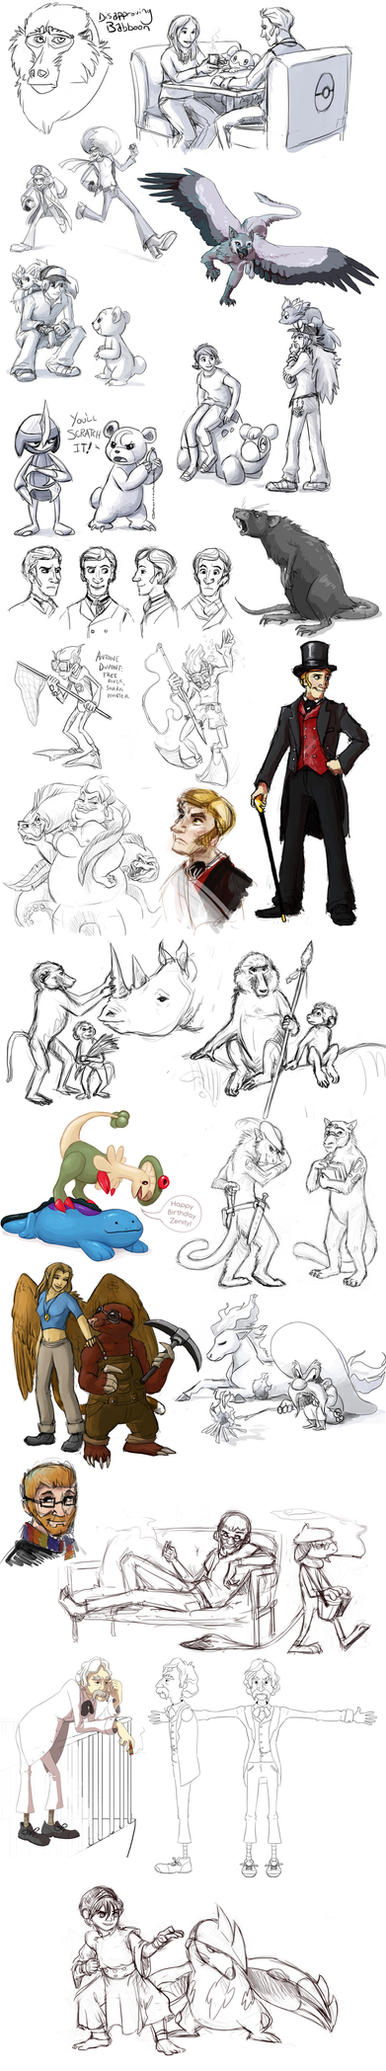 Sketch Dump Oct 23 2011 by stuffed